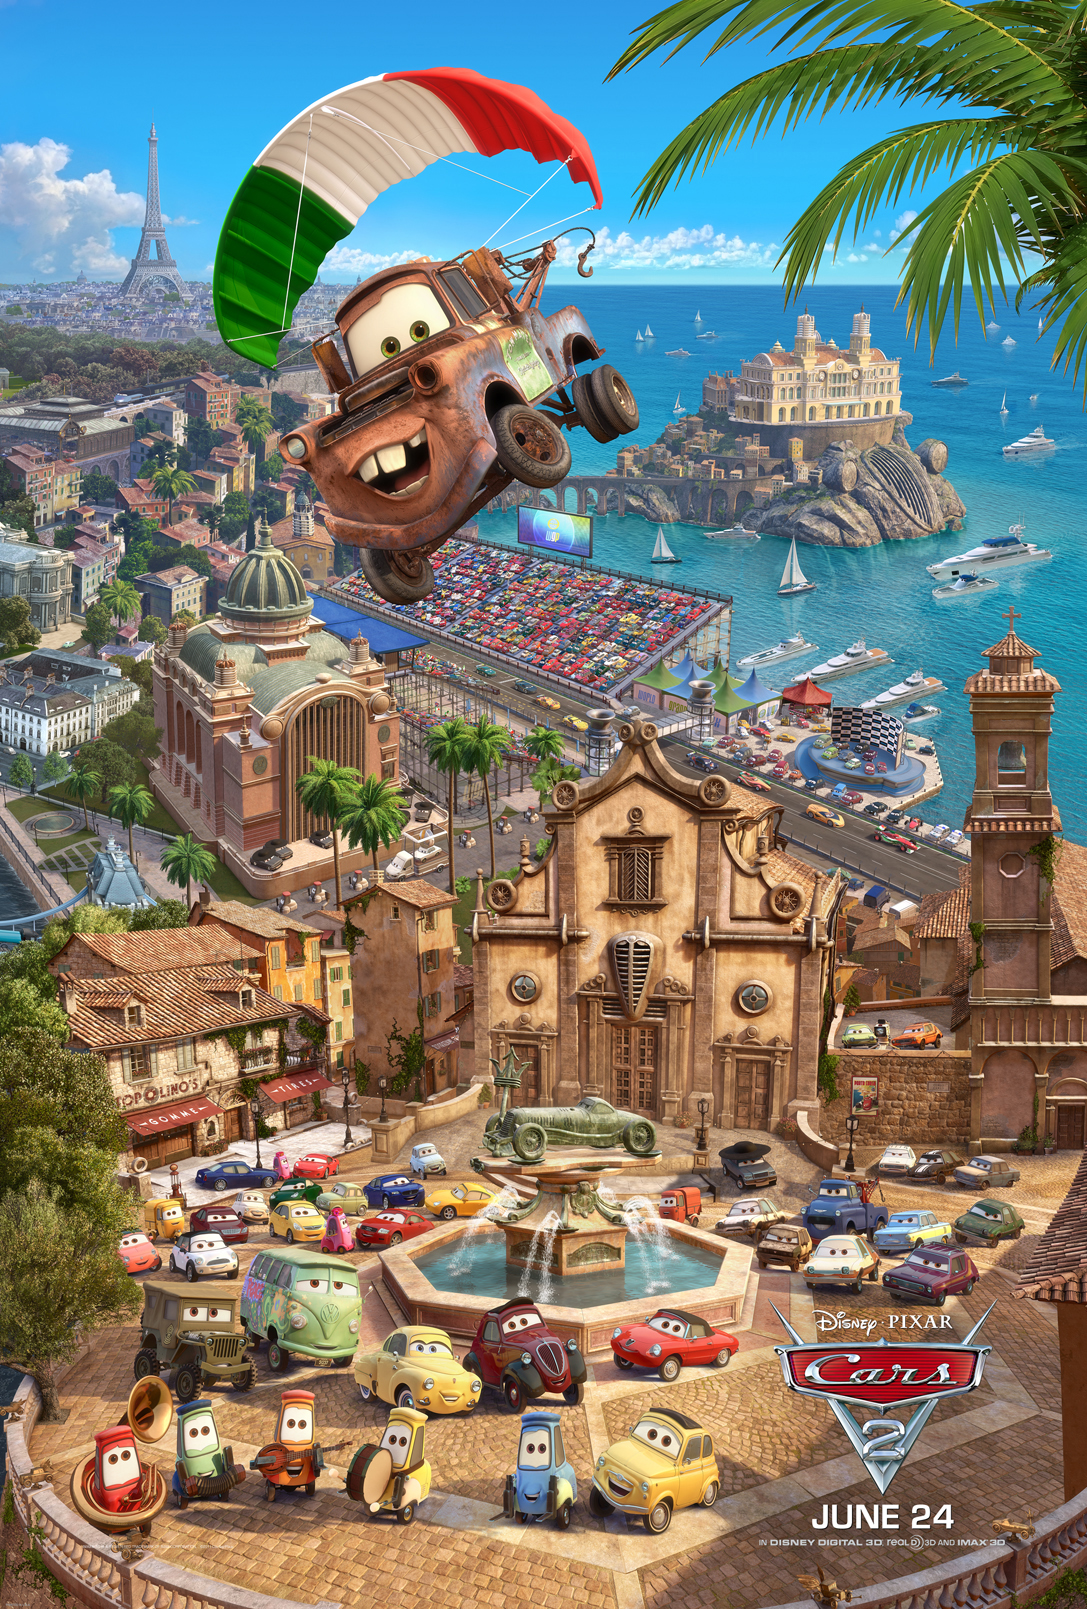 Apple Unveils Exclusive Cars 2 Triptych Poster